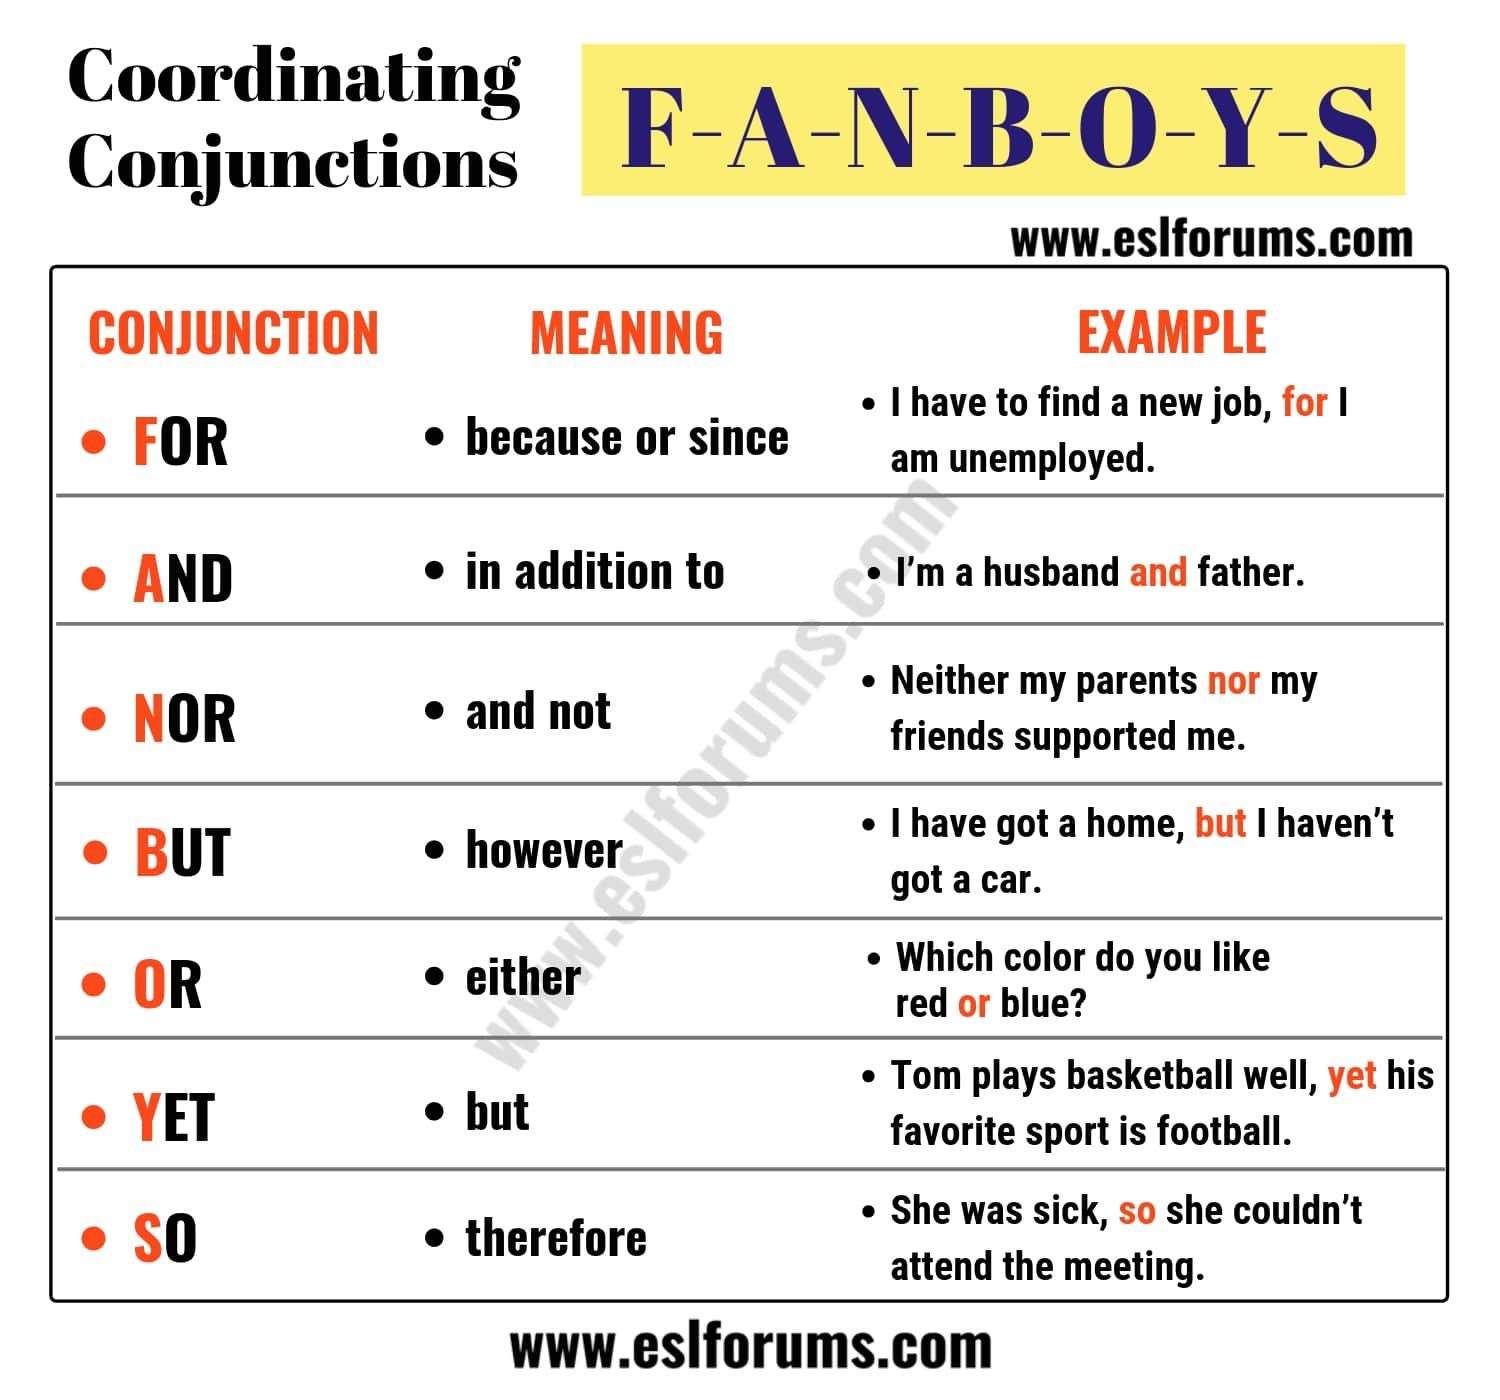 Fanboys 7 Important Coordinating Conjunctions With